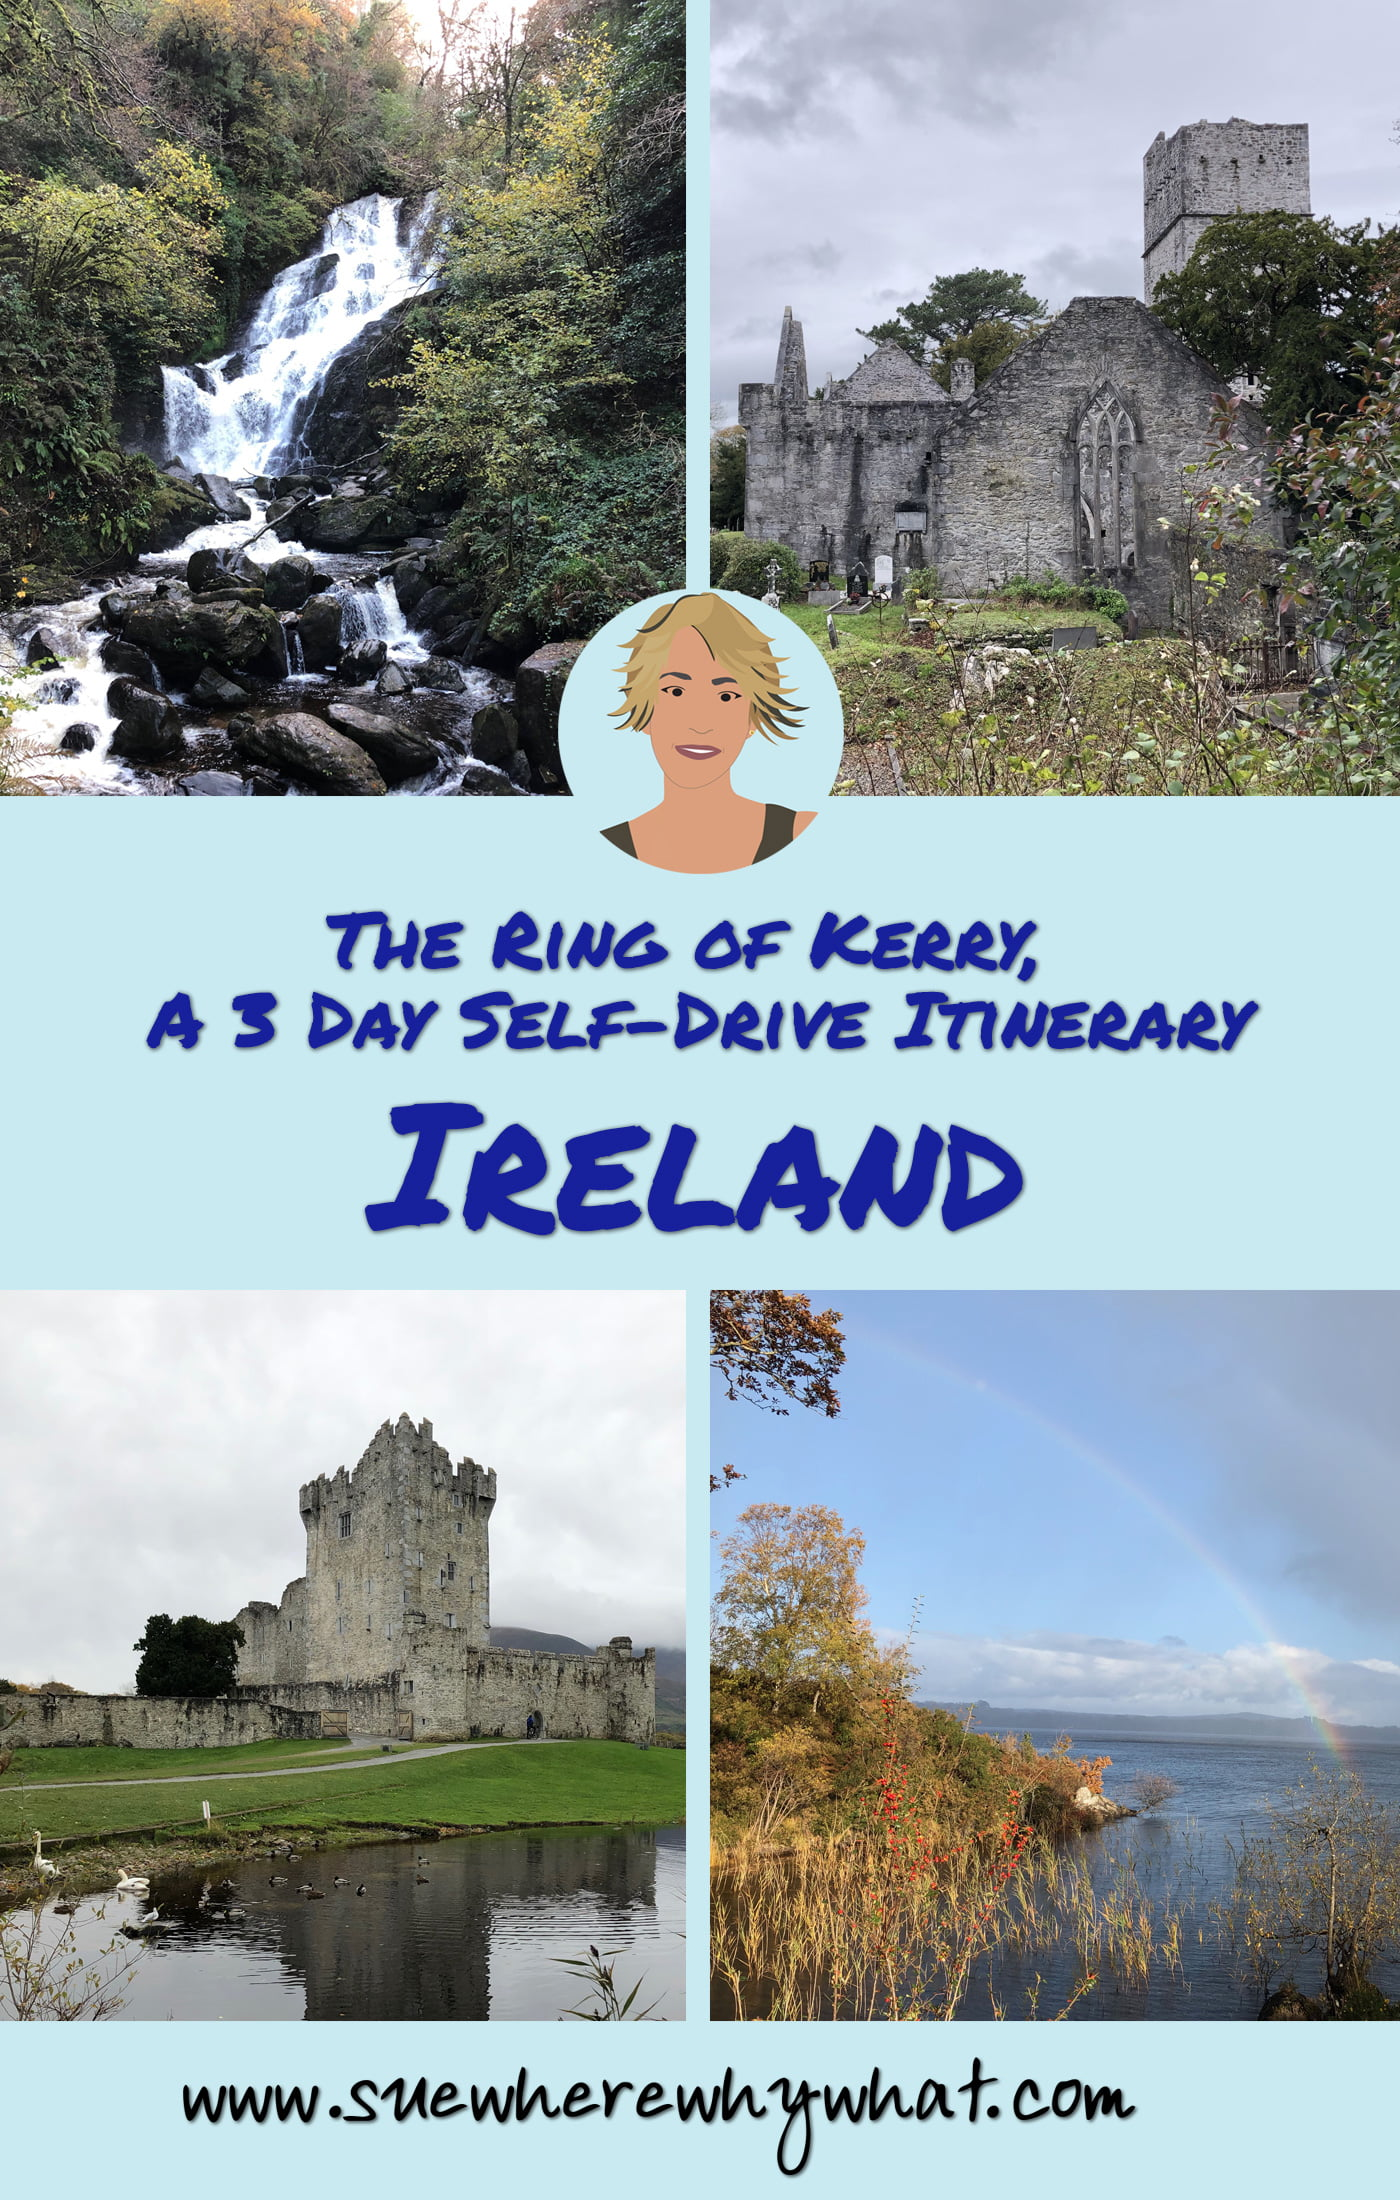 The Ring of Kerry, A 3 Day Self-Drive Itinerary